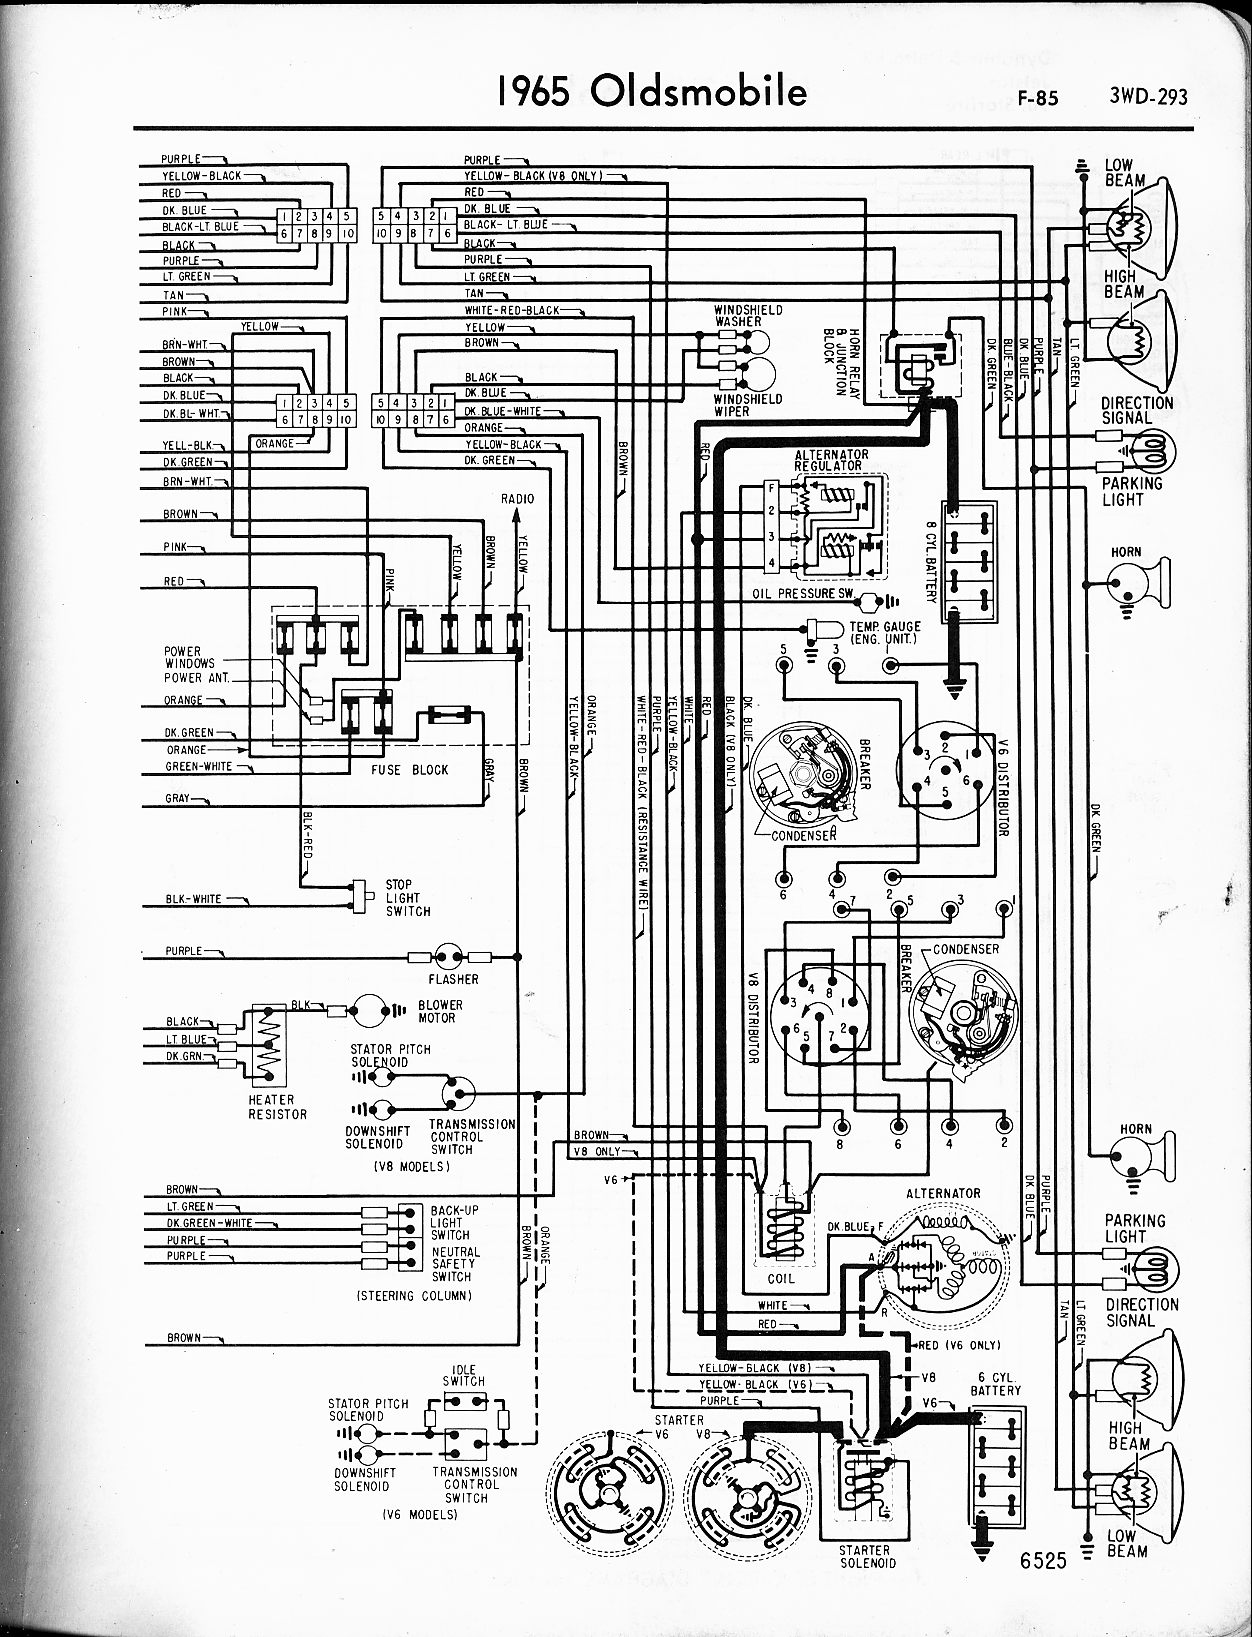 wiring diagram/schematic | 1965 oldsmobile 442 forum 1974 gmc truck wiring diagram